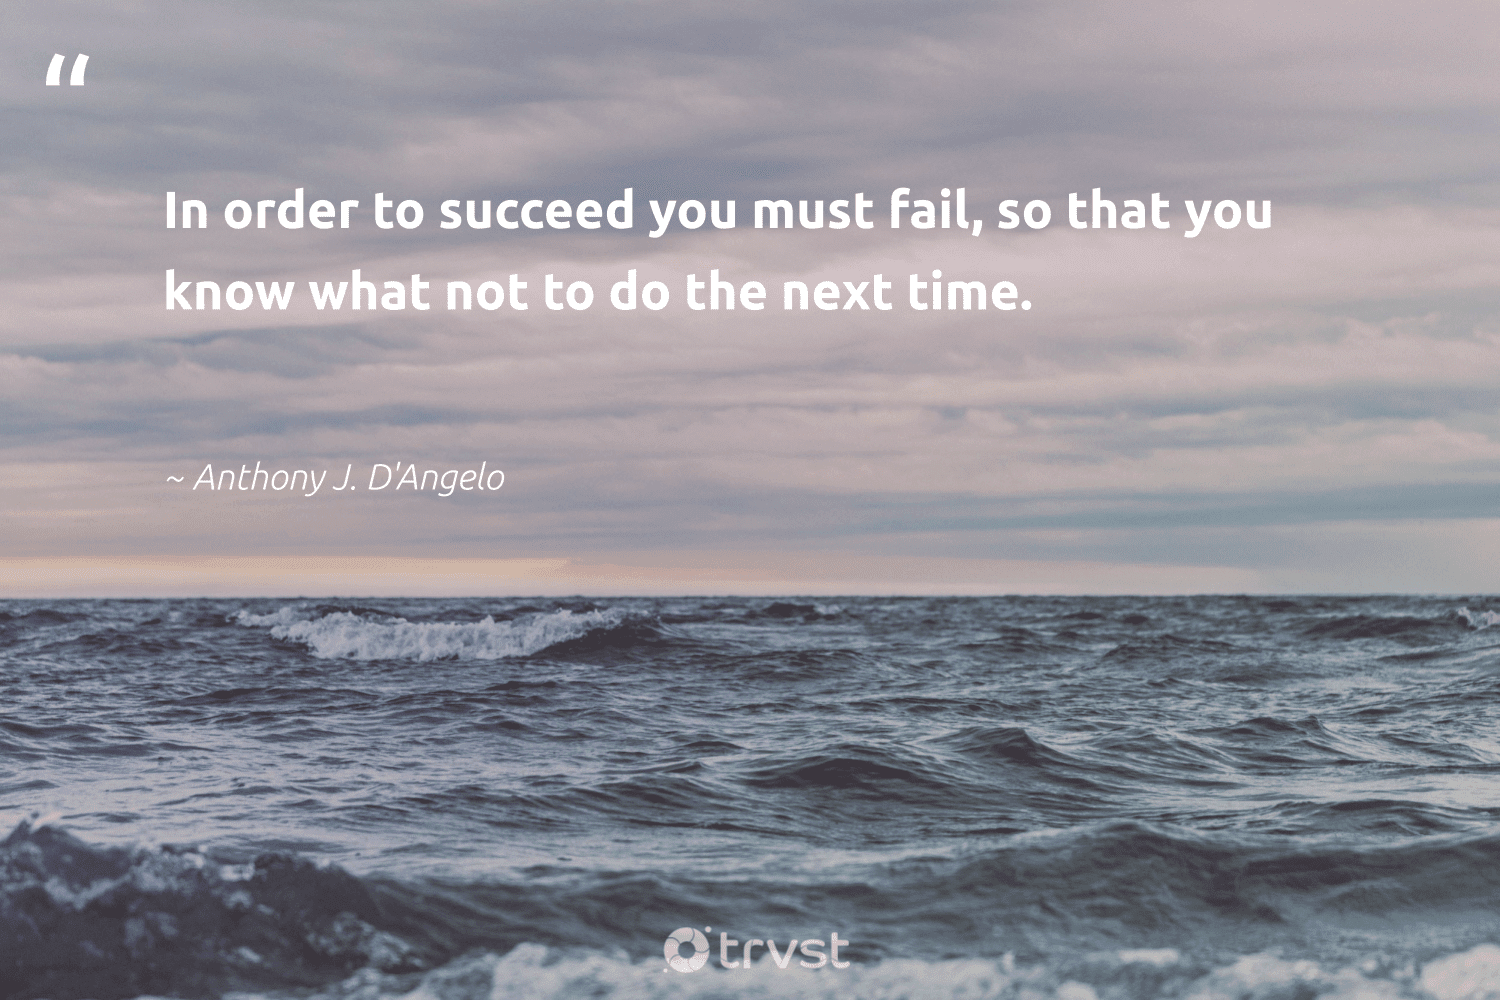 """""""In order to succeed you must fail, so that you know what not to do the next time.""""  - Anthony J. D'Angelo #trvst #quotes #successquotes #dogood #suceeed #collectiveaction #failfast #ecoconscious #successful #beinspired #successtips #bethechange"""